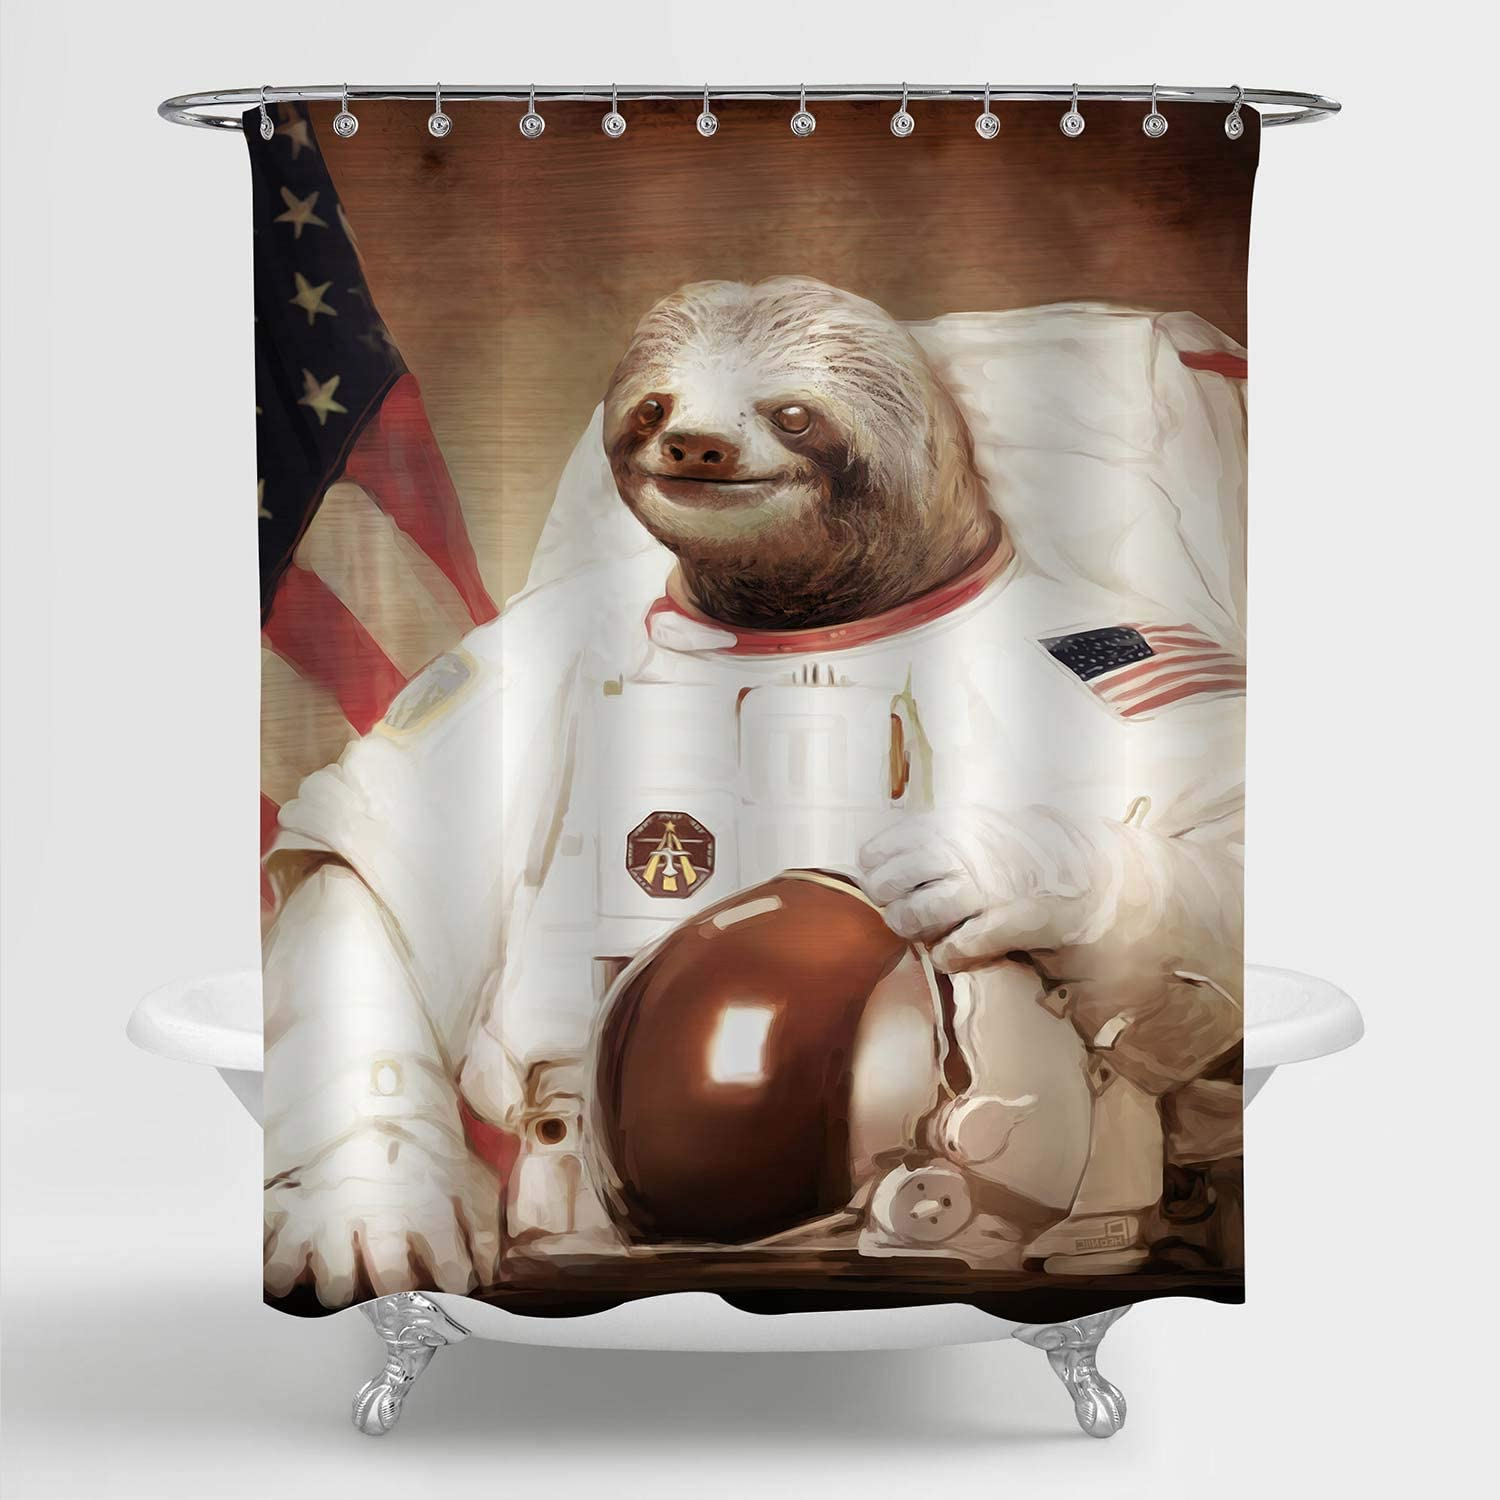 weird-gifts-shower-curtain